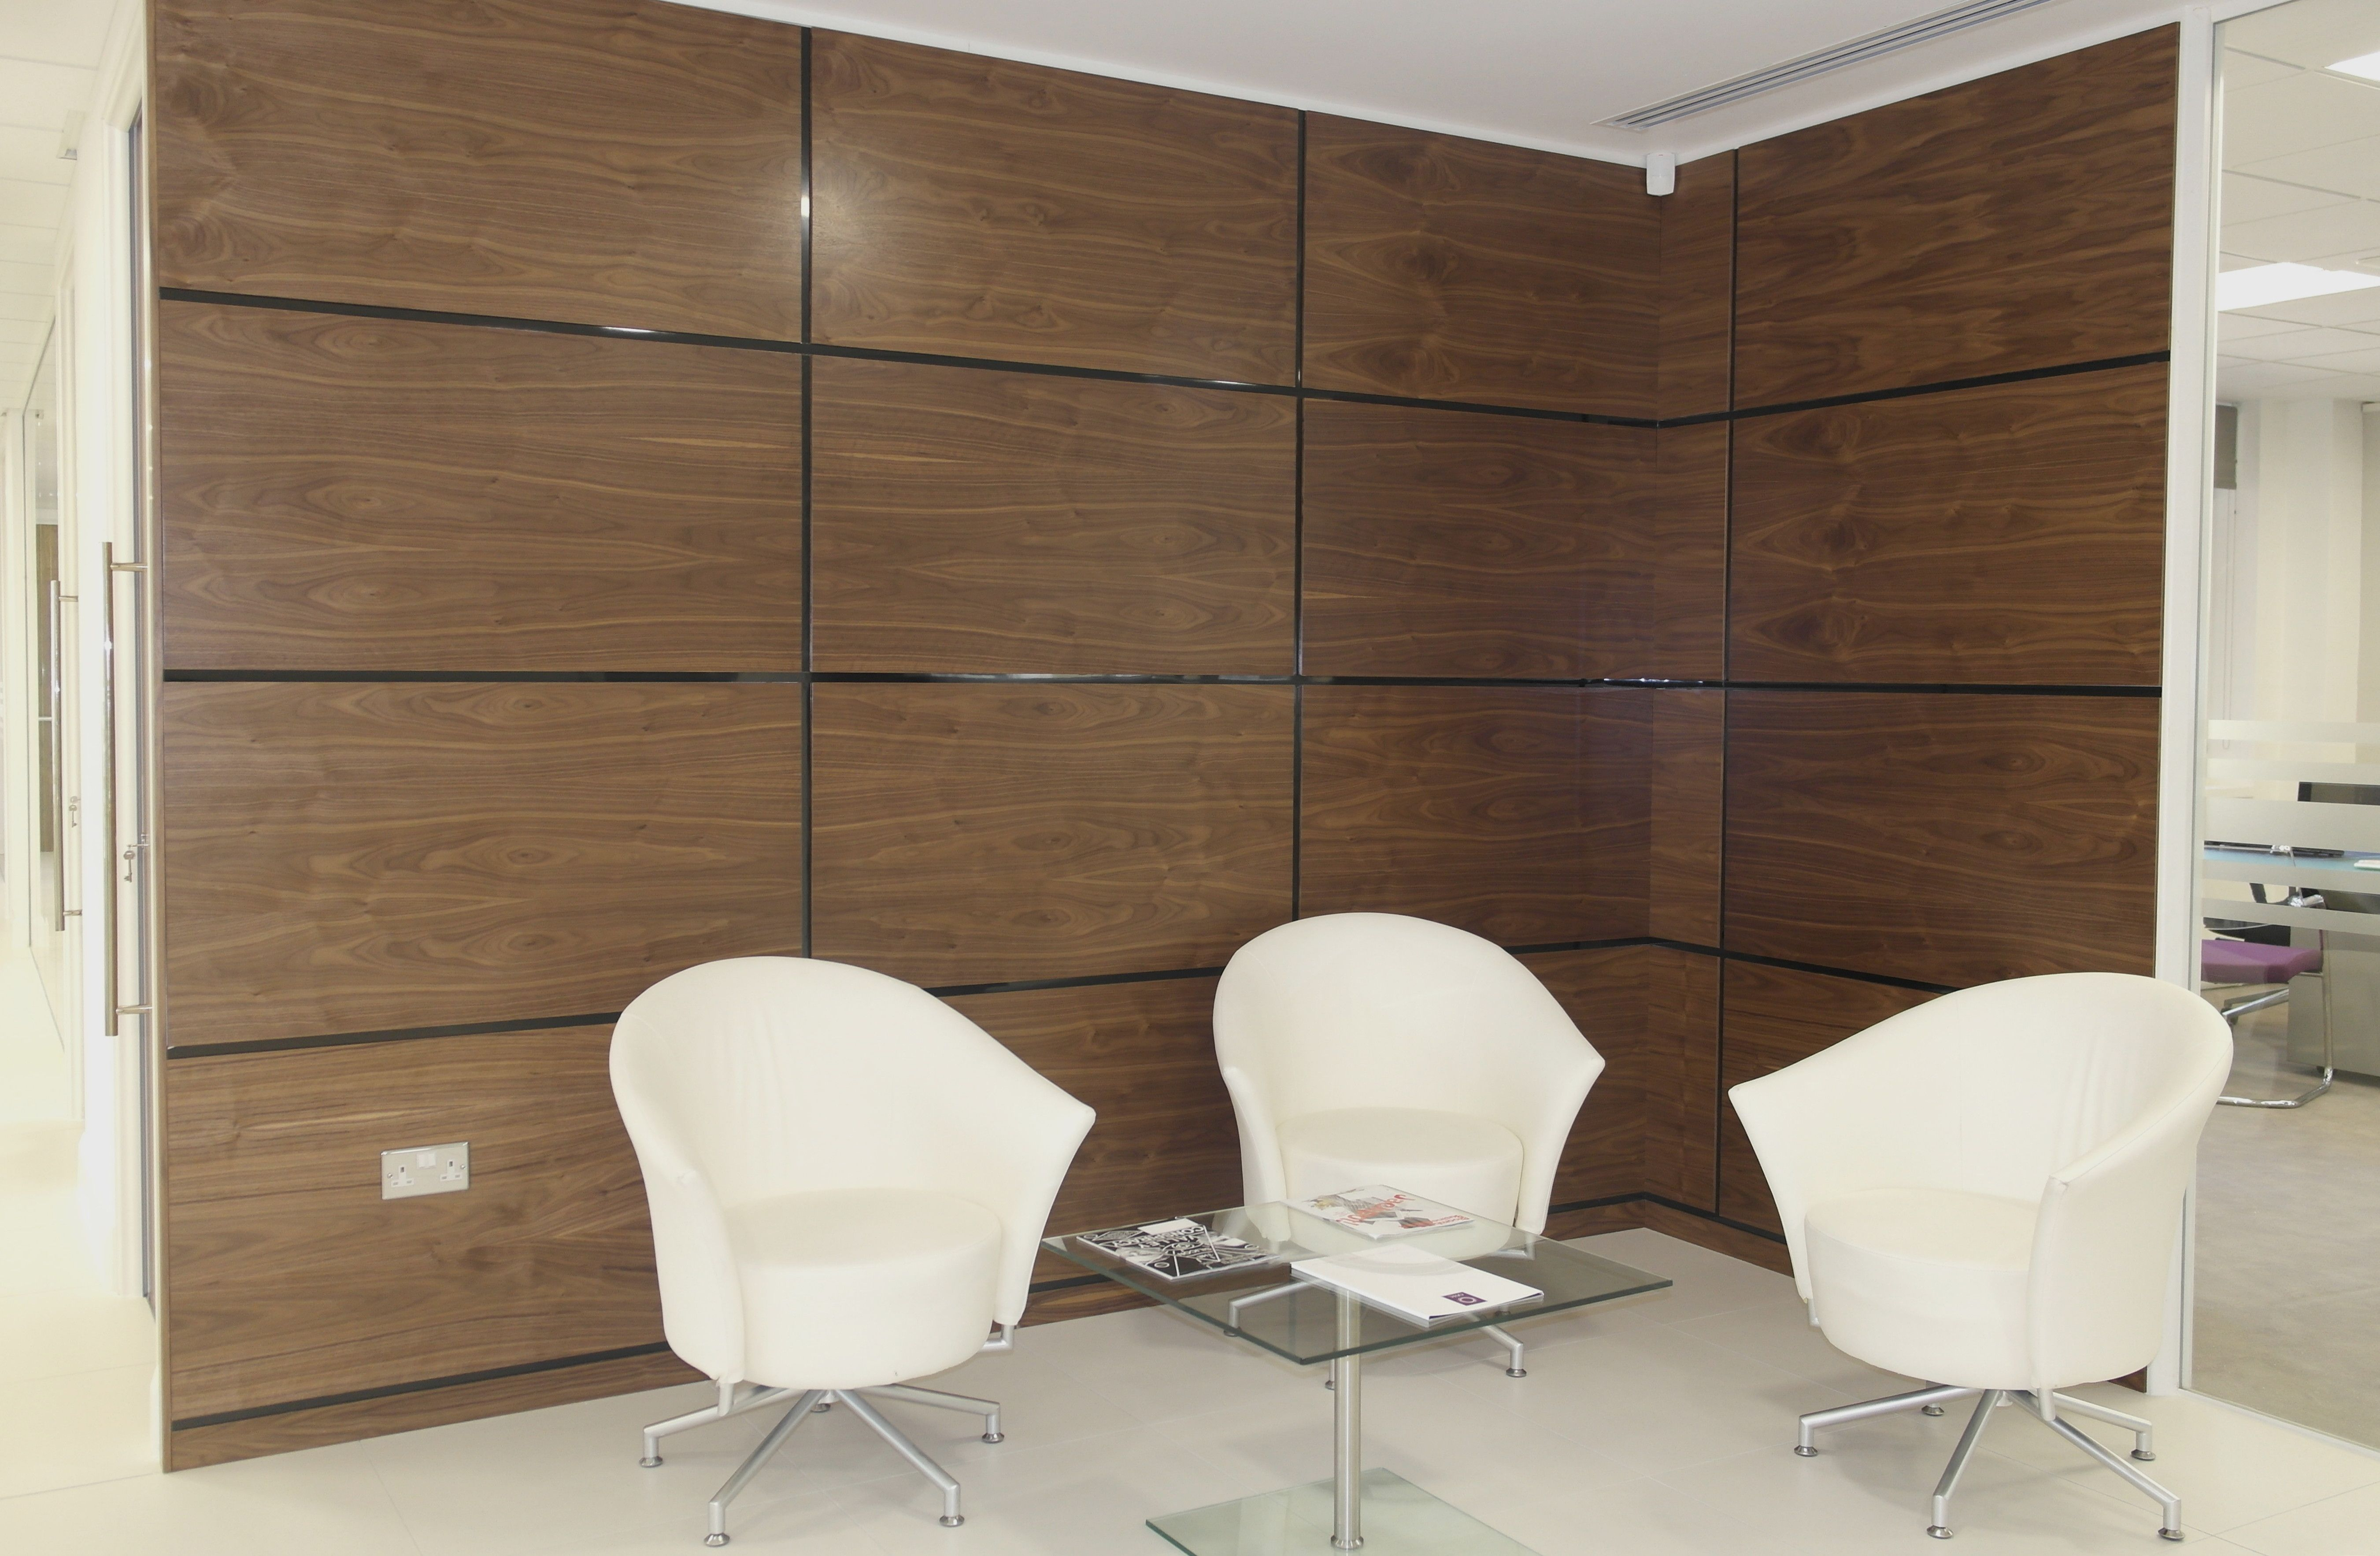 Artizo Walnut Wall Panels With Black High Gloss Shadow Moulding ... for Office Wooden Wall Panelling Designs  104xkb